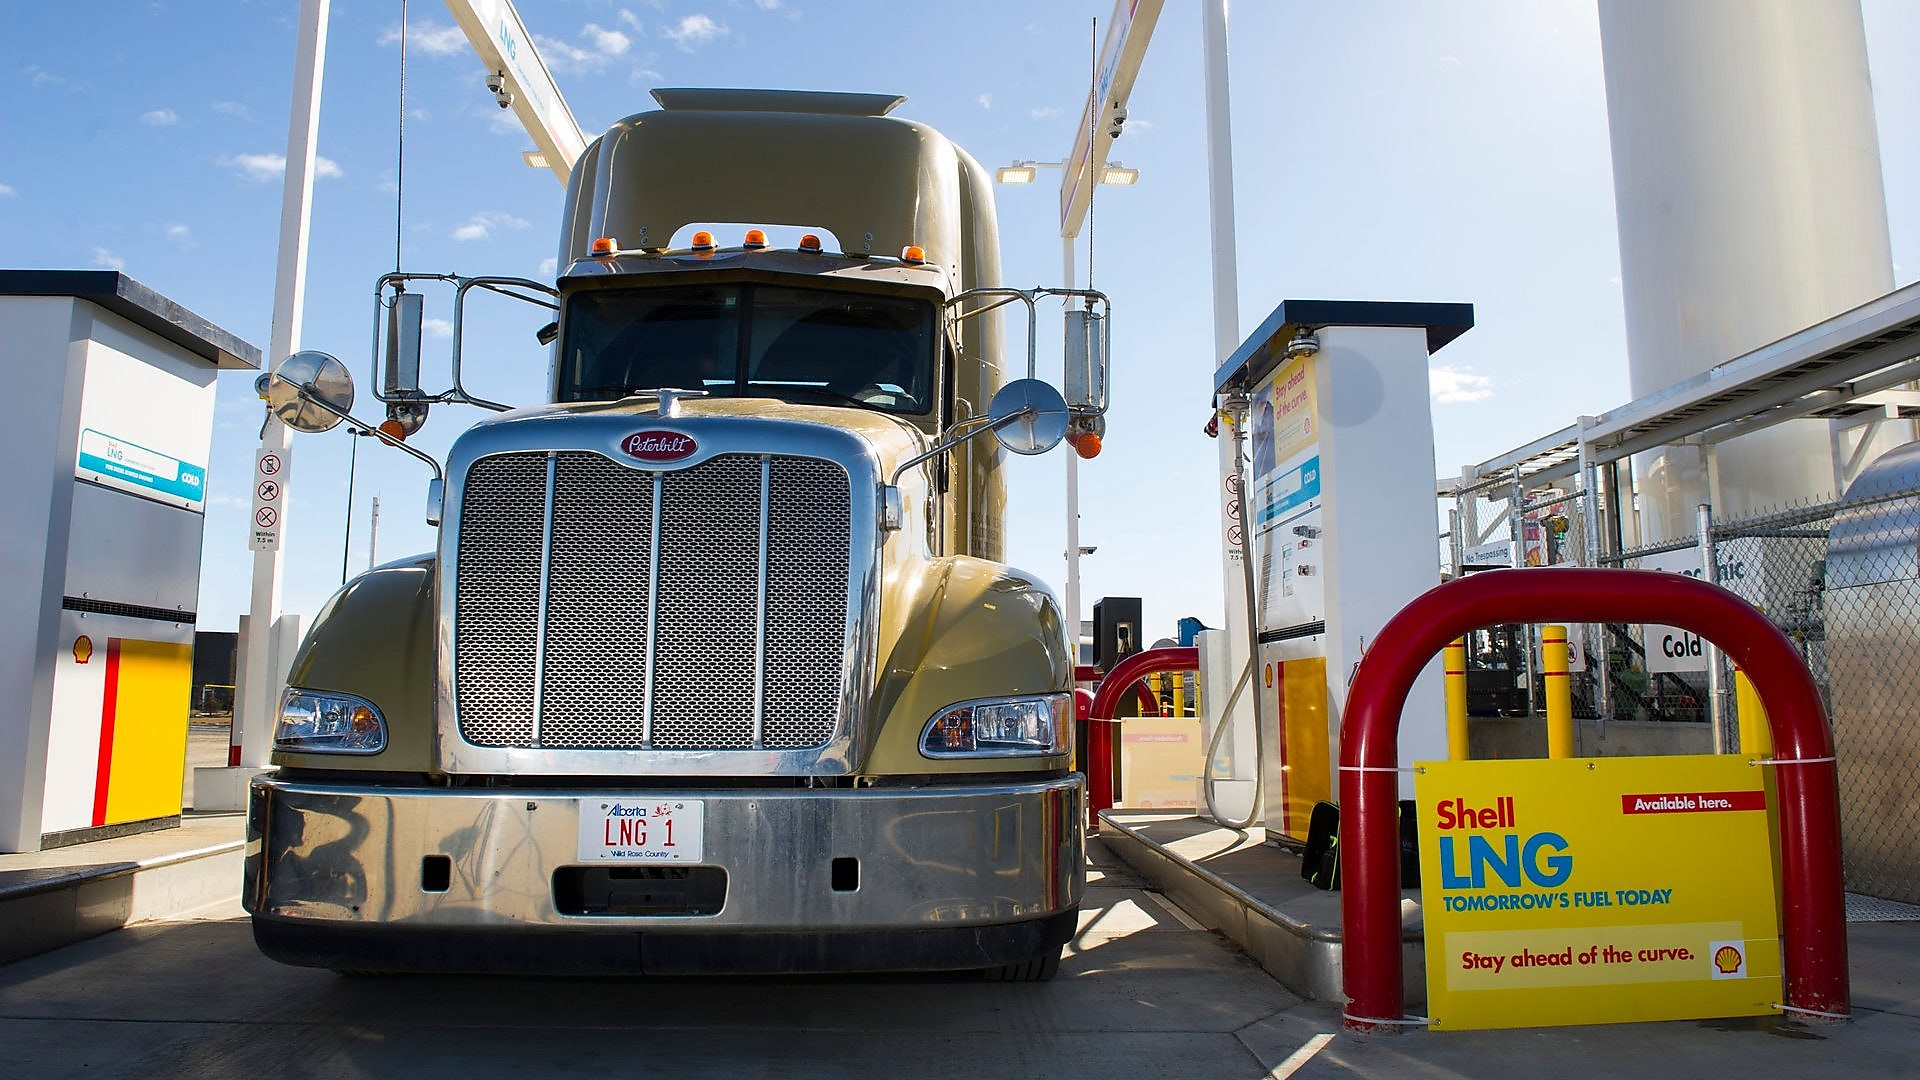 A truck getting ready to fuel at shells lng fuelling station